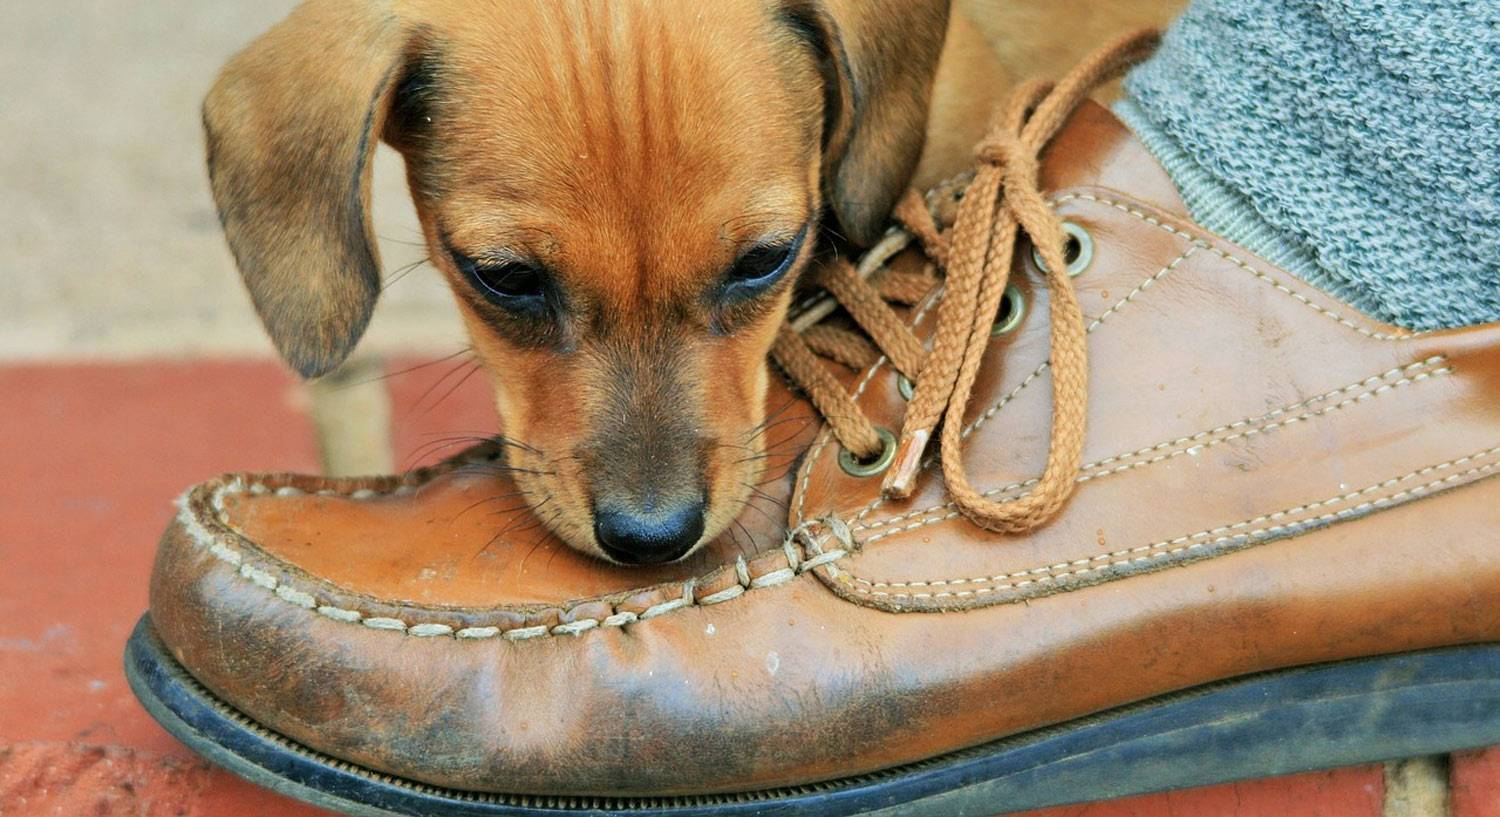 Photo of a dog chewing a leather shoe